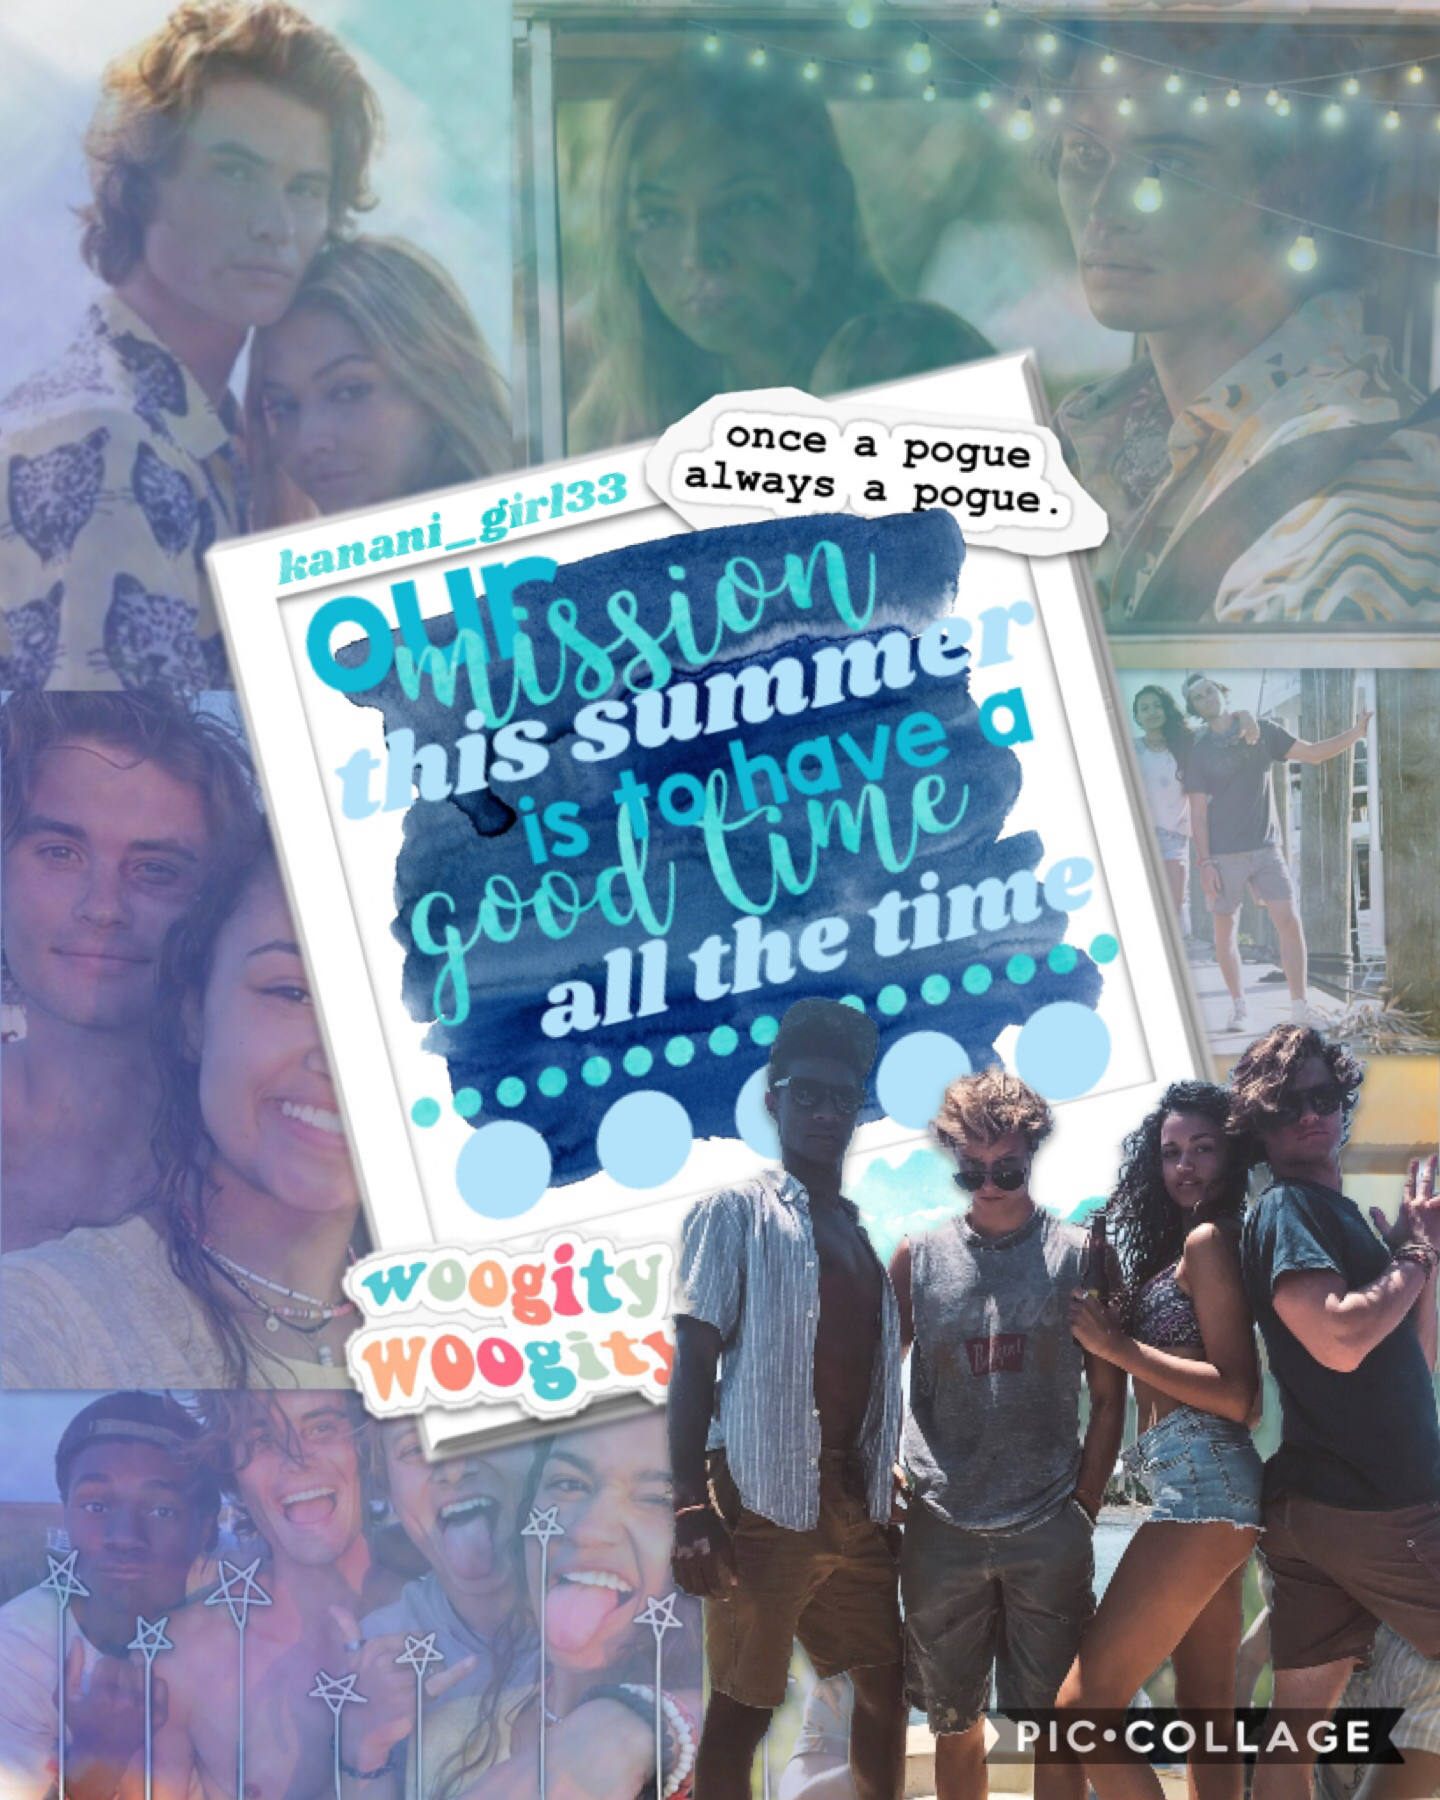 🌊tap🌊 ☆august 1, 2020☆ happy august everyone 💙 if you haven't already, definitely watch outer banks on netflix!! if u have any netflix suggestions leave them down below! comment a 🌊 for a possible shoutout!! today's shoutout goes to @dancingintheraine 🦋